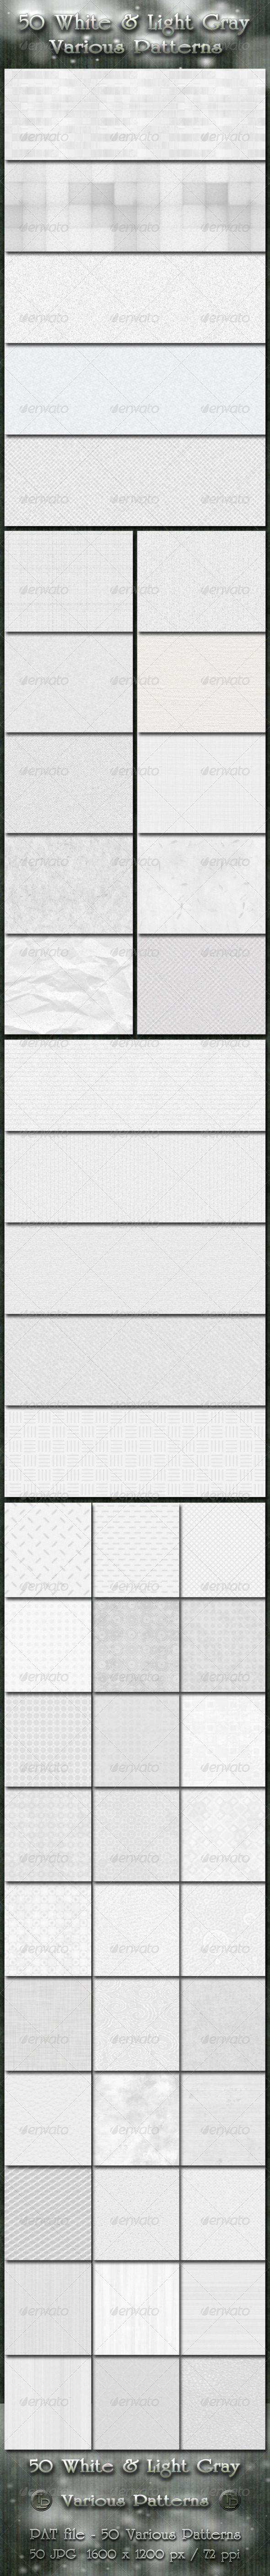 GraphicRiver 50 White and Light Gray Various Patterns 3041421